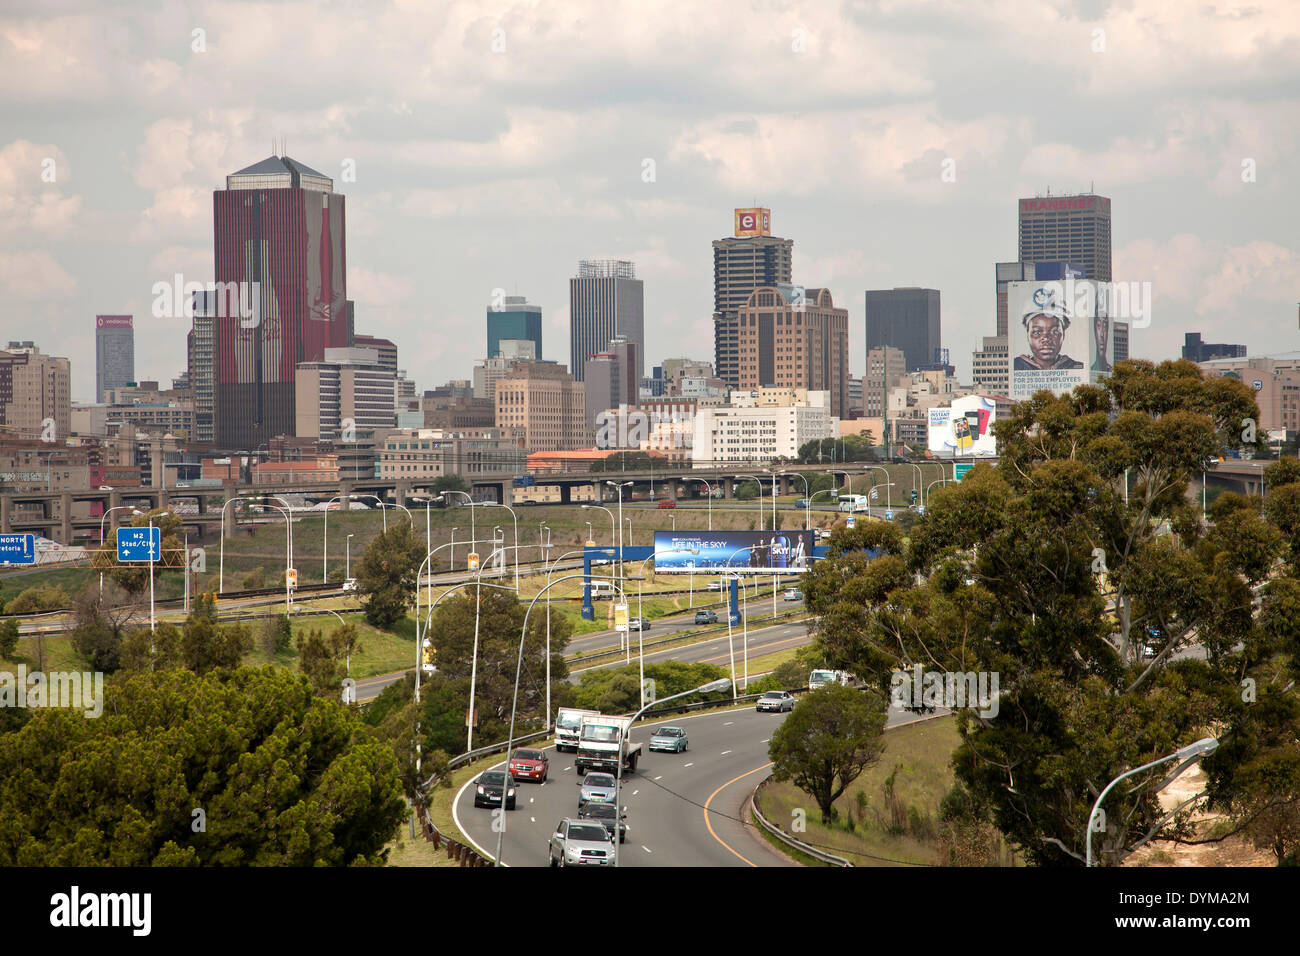 Skyline and highway, Johannesburg, Gauteng, South Africa - Stock Image